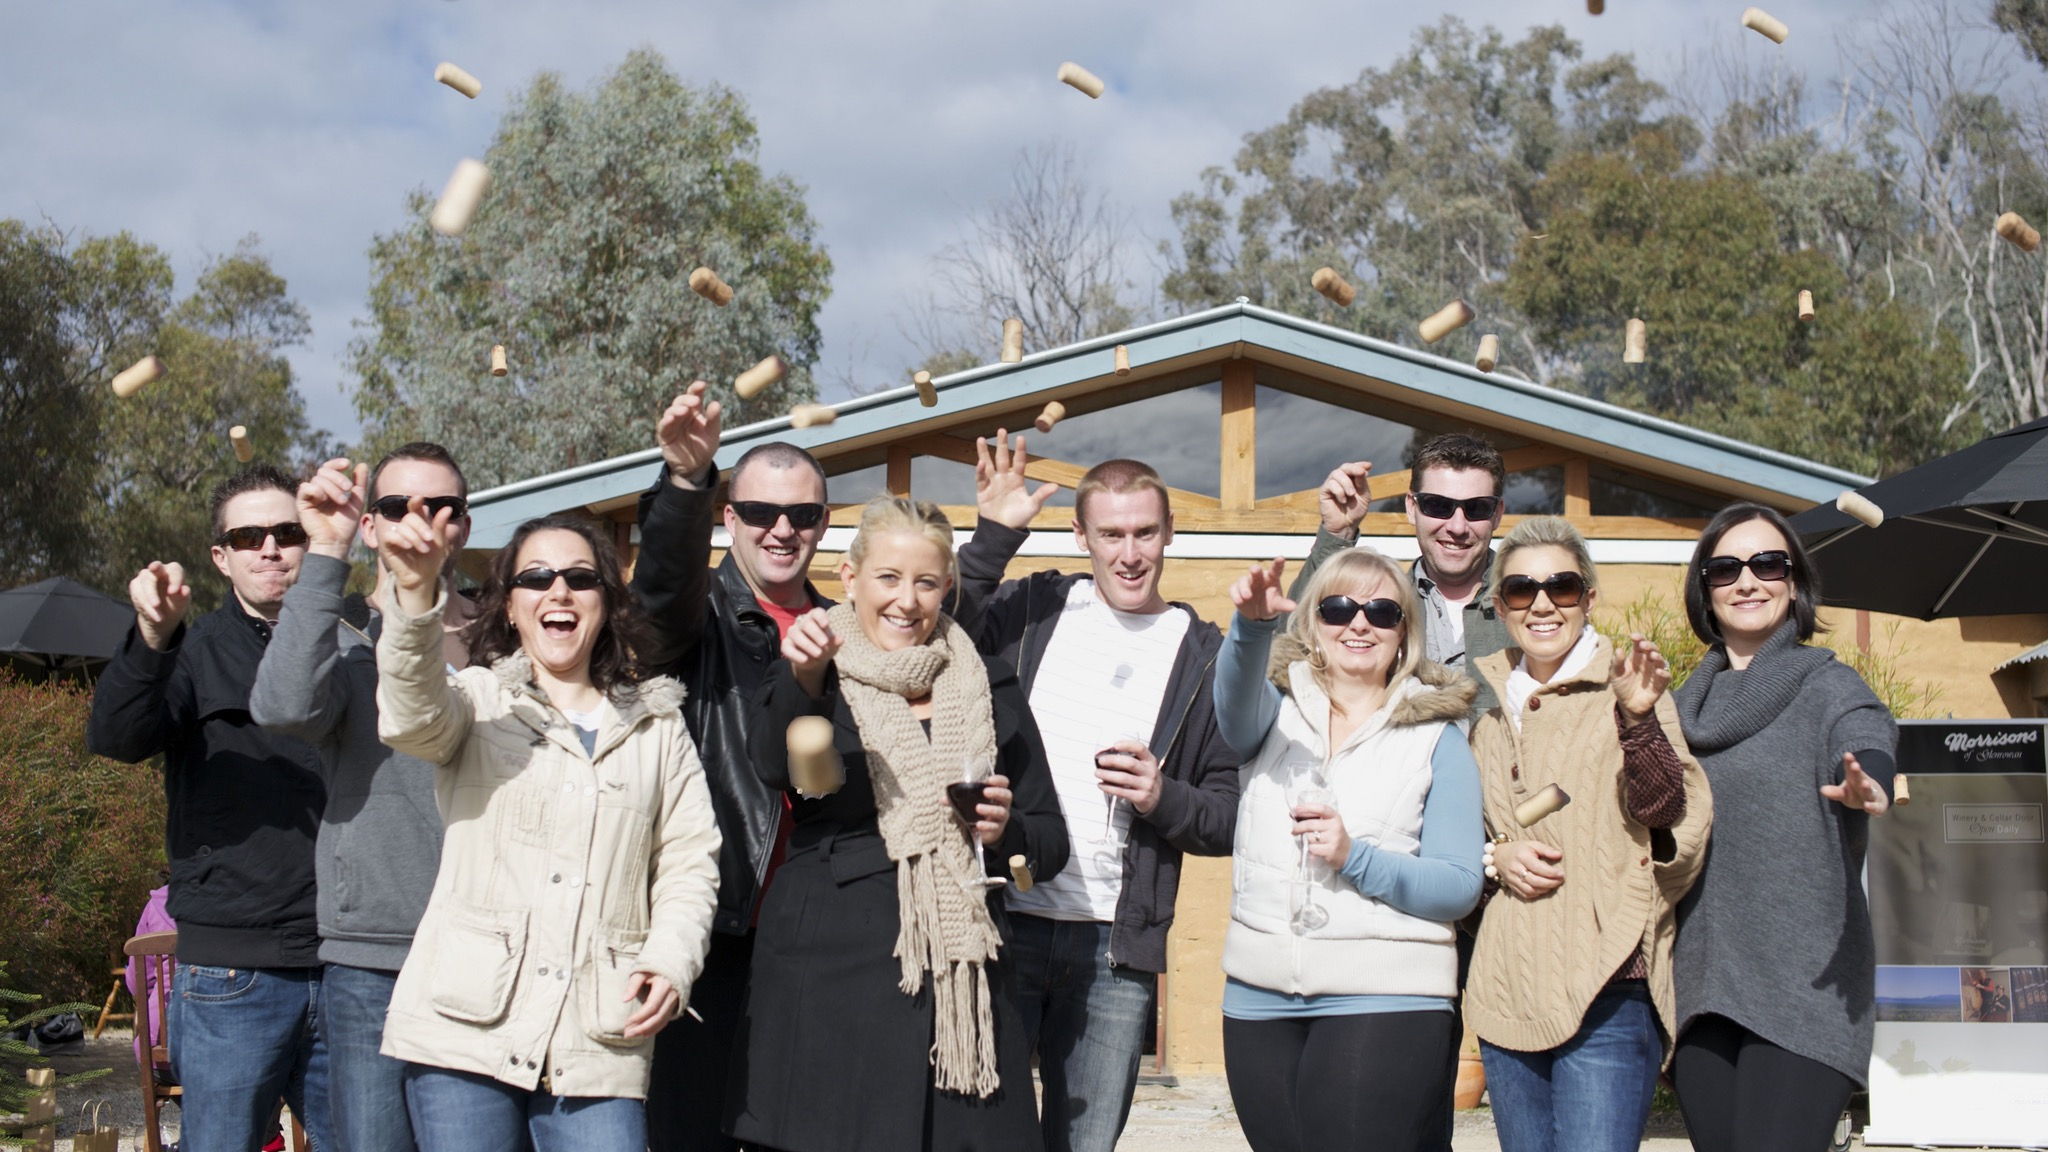 Festival fun in the Glenrowan Wine Region